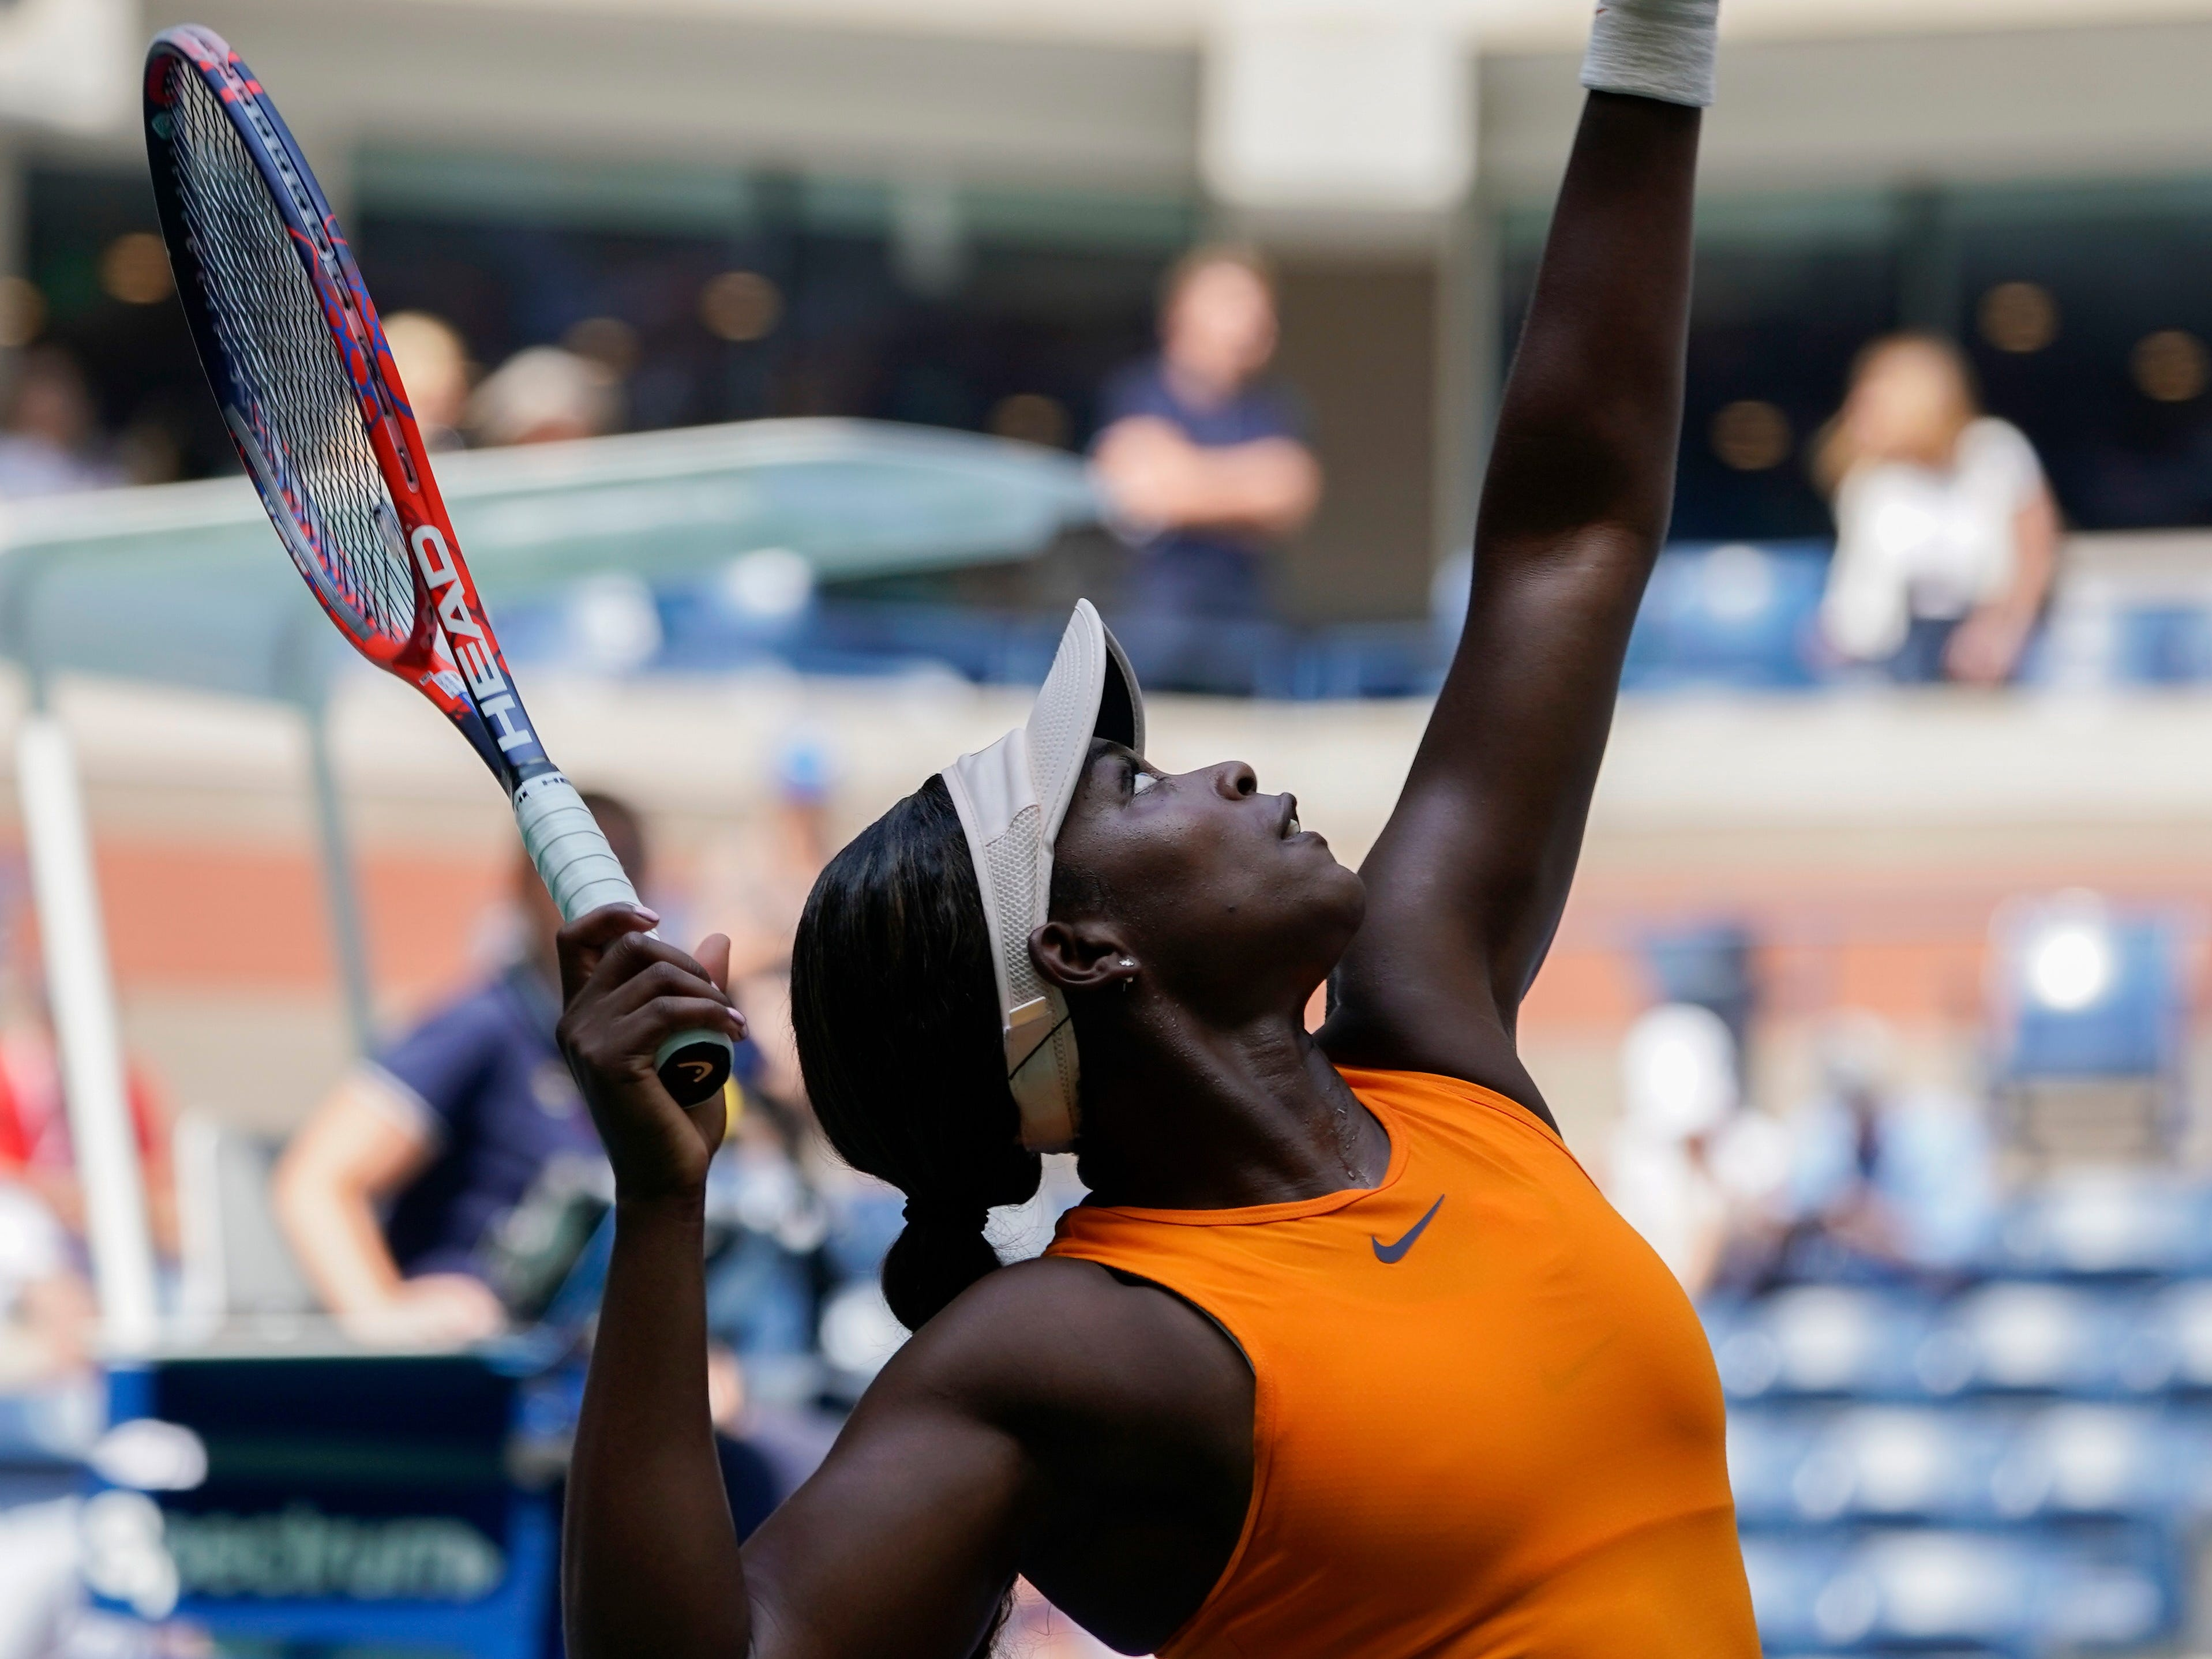 Sloane Stephens of the USA hits to Anhelina Kalinina of Ukraine in a second-round match.